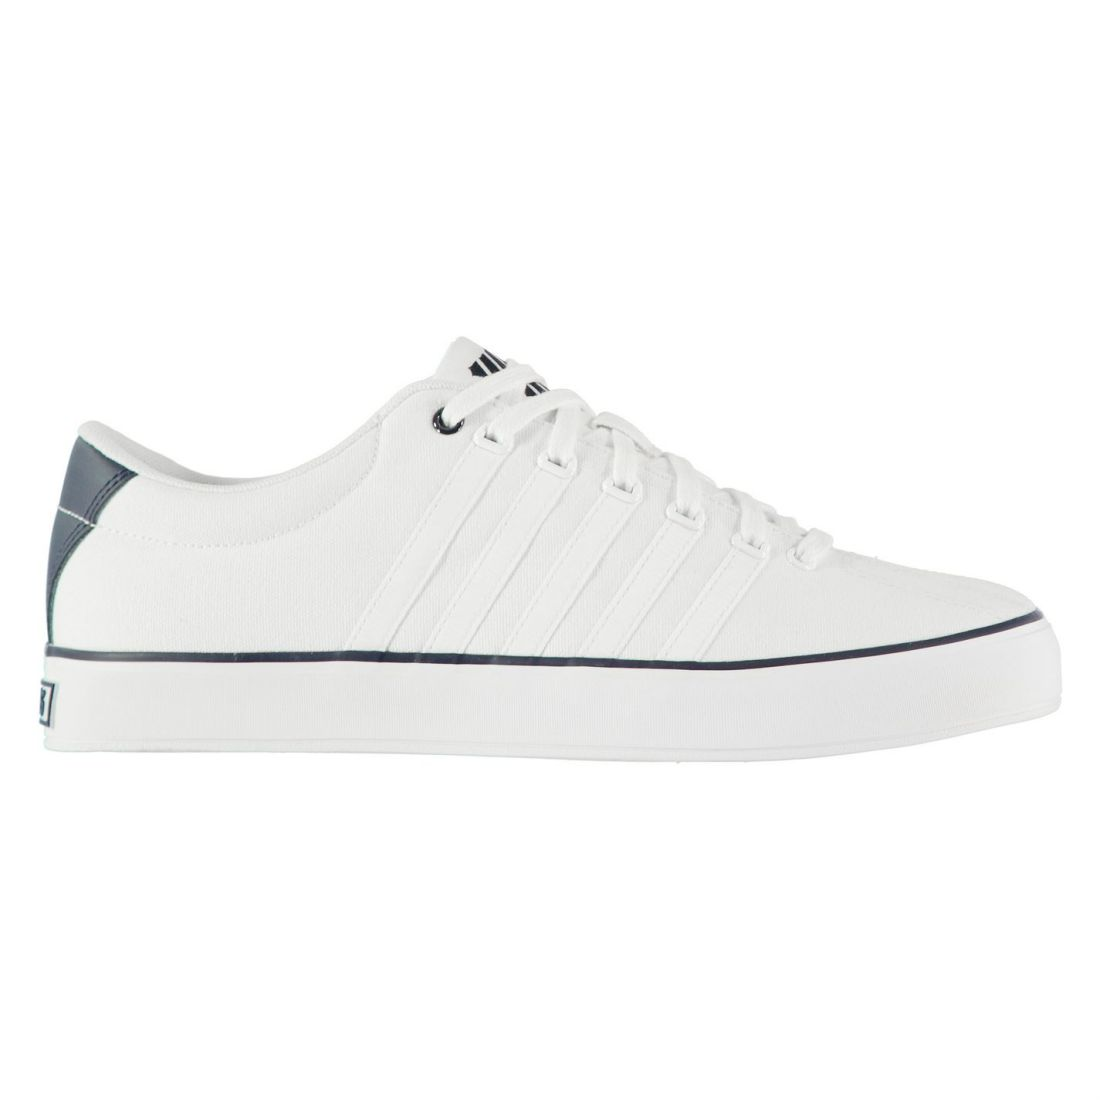 630261cac68 K Swiss Court Pro Vulc Sneakers Mens Gents Laces Fastened Padded ...